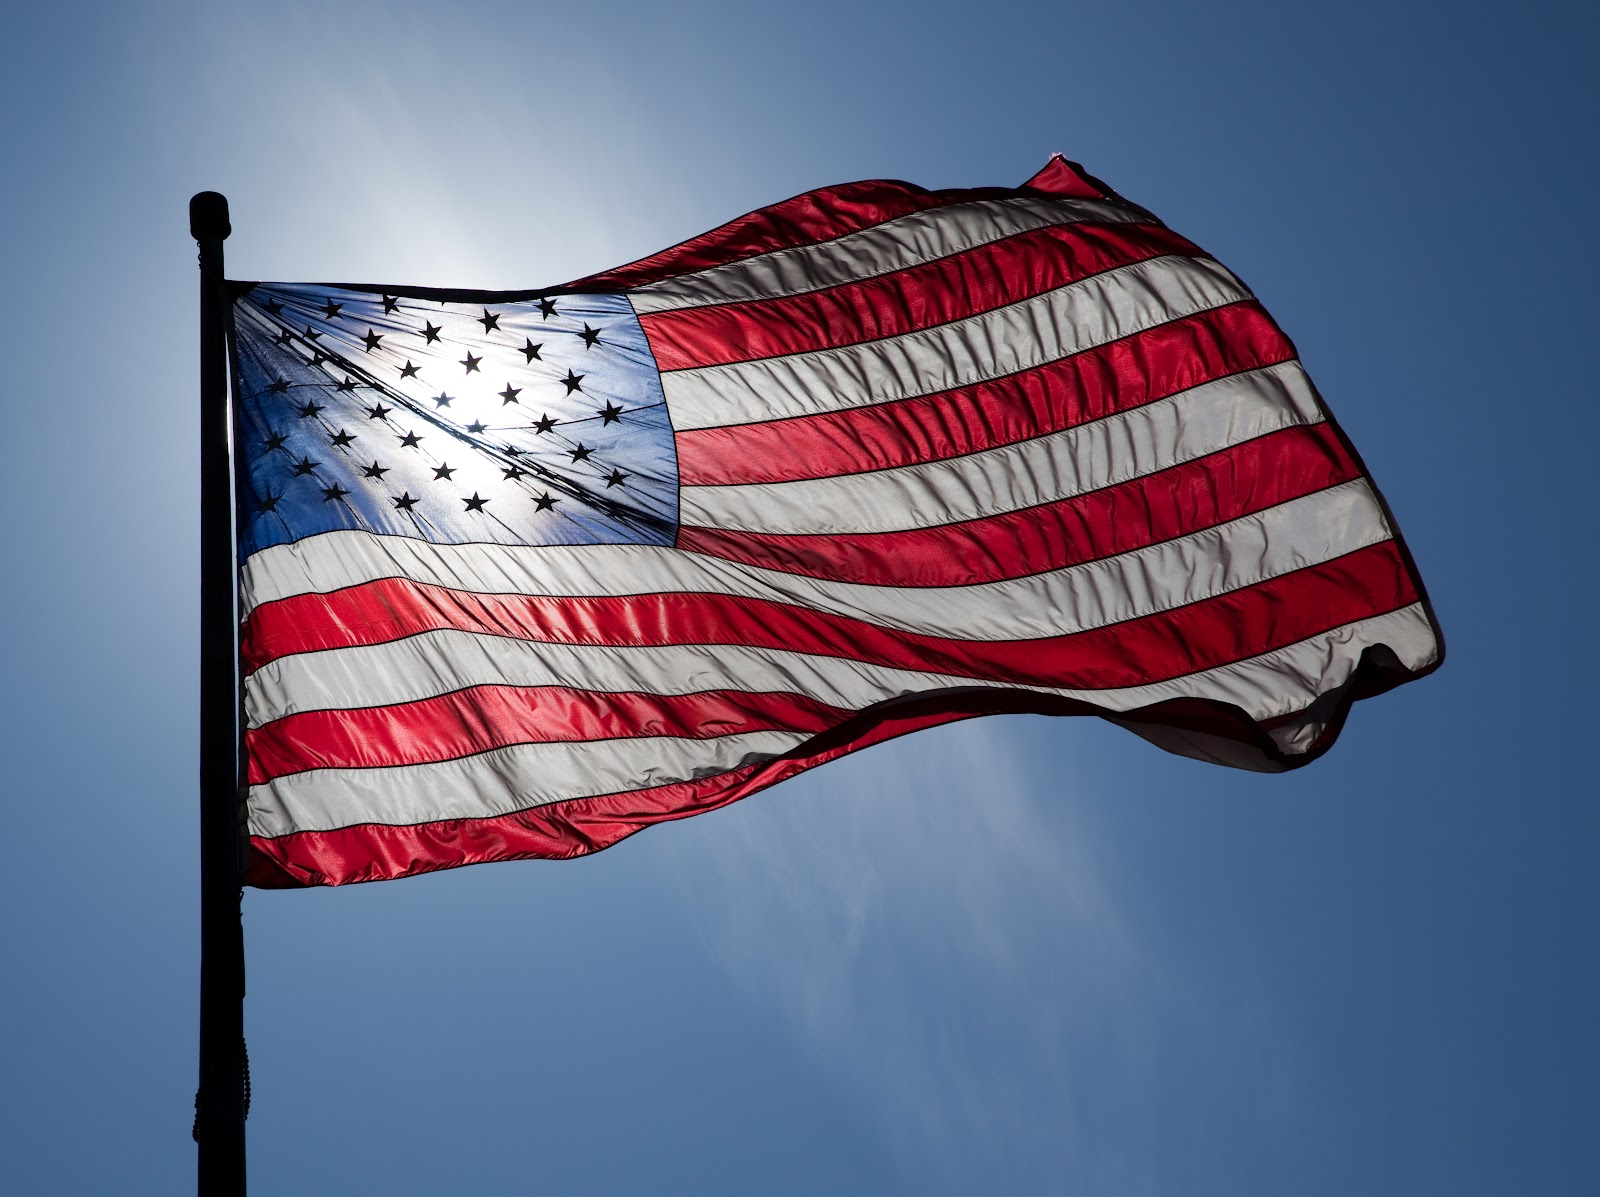 File:US Flag Backlit.jpg - Wikimedia Commons